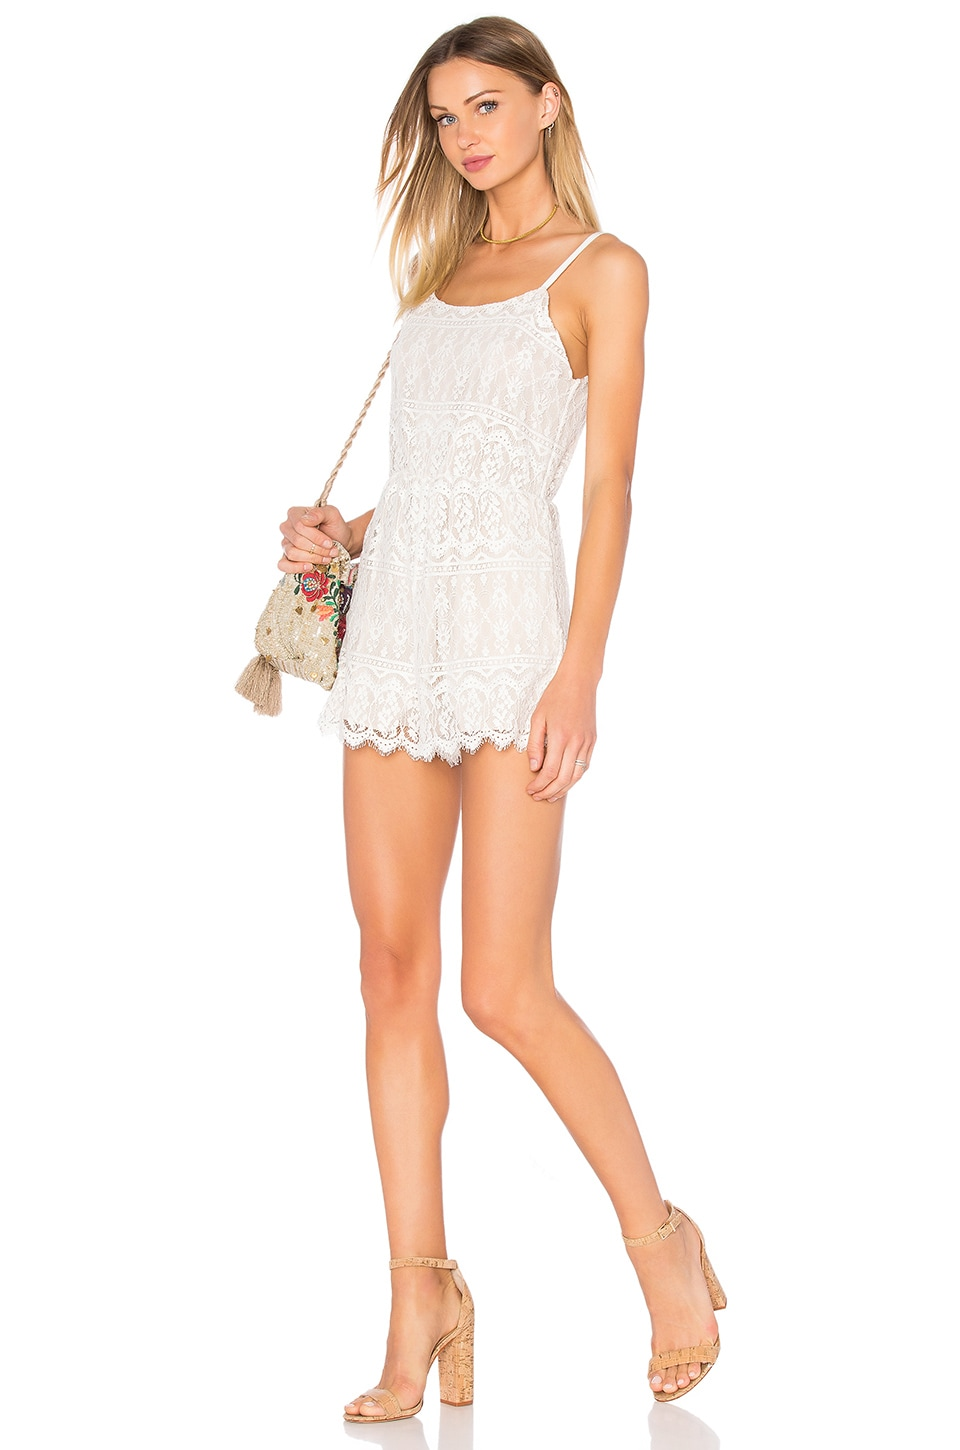 Alice + Olivia Cassia Lace Romper in Ivory & Natural